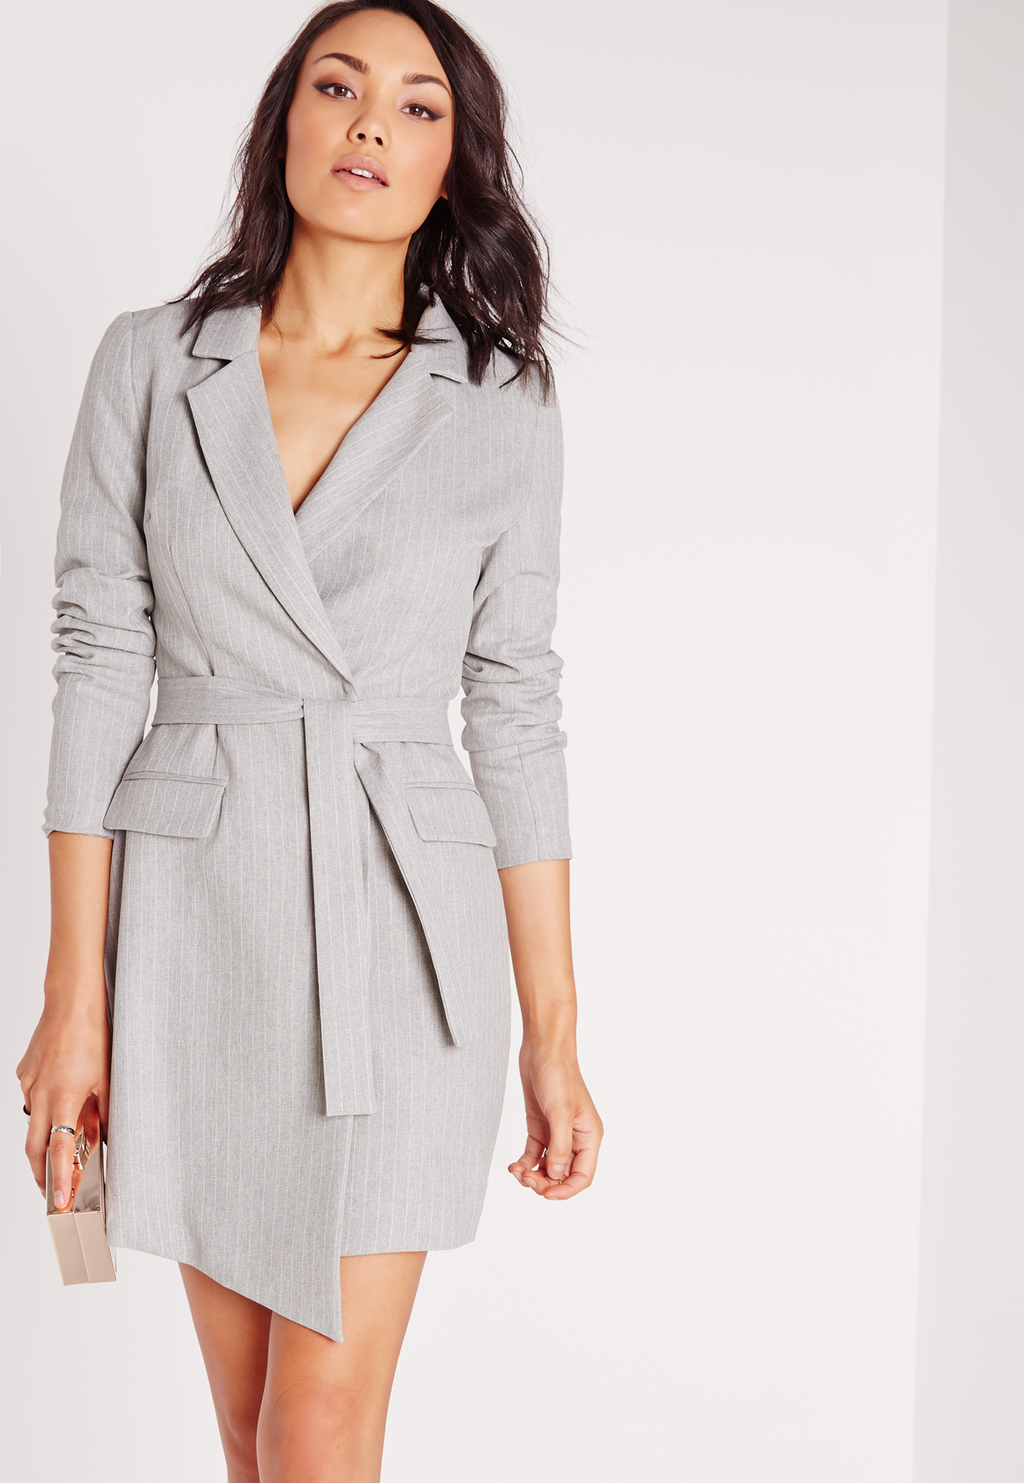 Pinstripe Wrap Blazer Dress Grey, Grey - style: faux wrap/wrap; length: mid thigh; neckline: v-neck; pattern: plain; predominant colour: light grey; occasions: evening; fit: body skimming; fibres: polyester/polyamide - 100%; sleeve length: long sleeve; sleeve style: standard; pattern type: fabric; texture group: other - light to midweight; season: s/s 2016; wardrobe: event